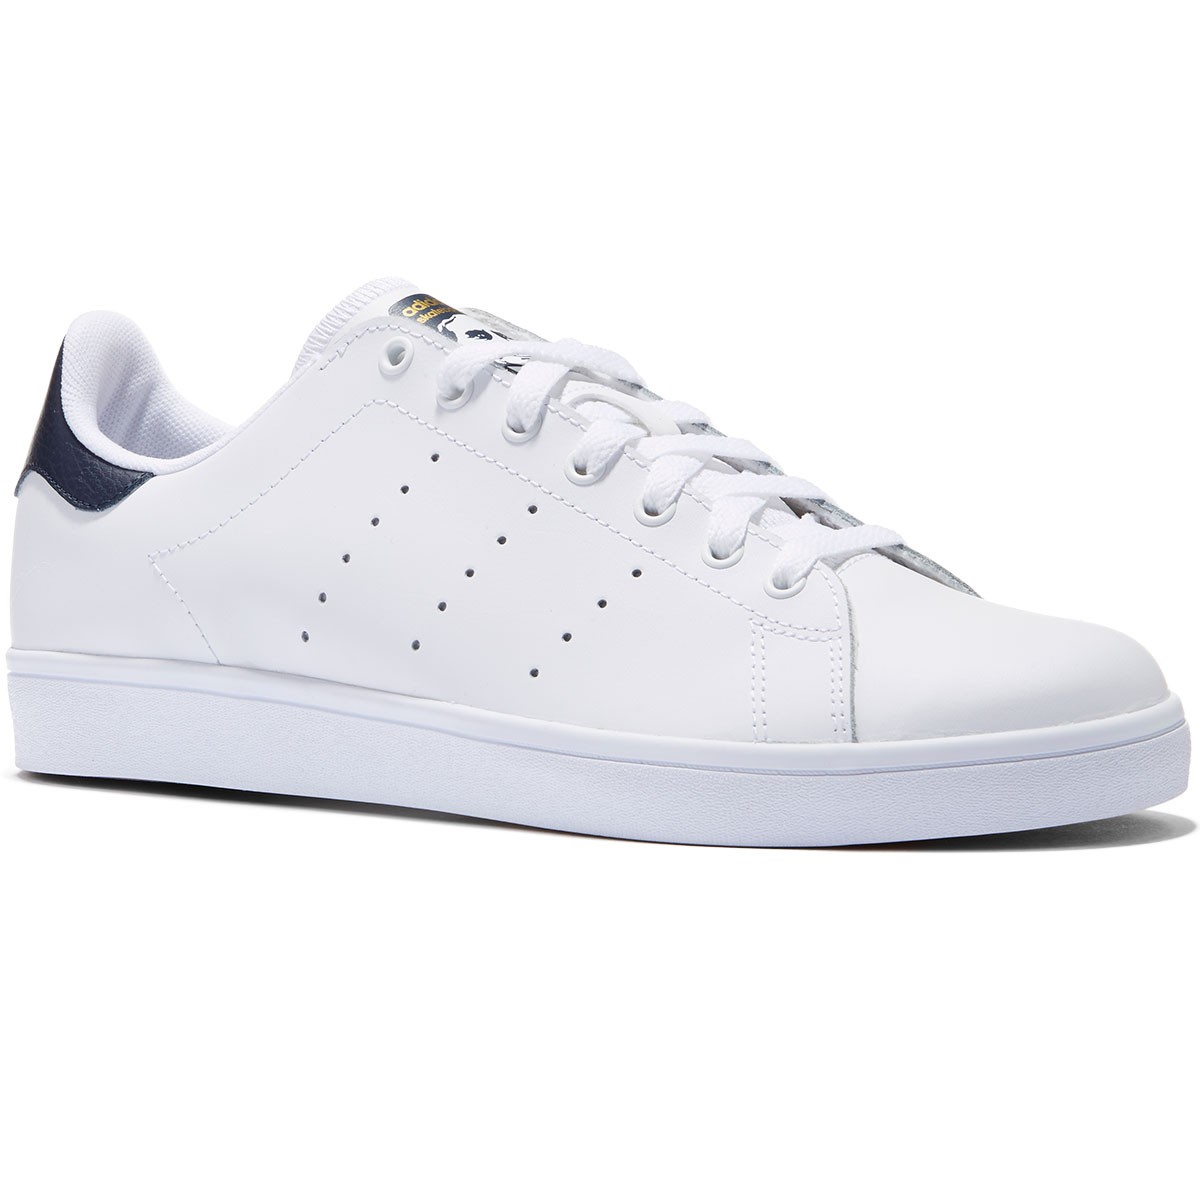 pretty nice 03bbd fb365 Adidas Stan Smith Vulc Shoes